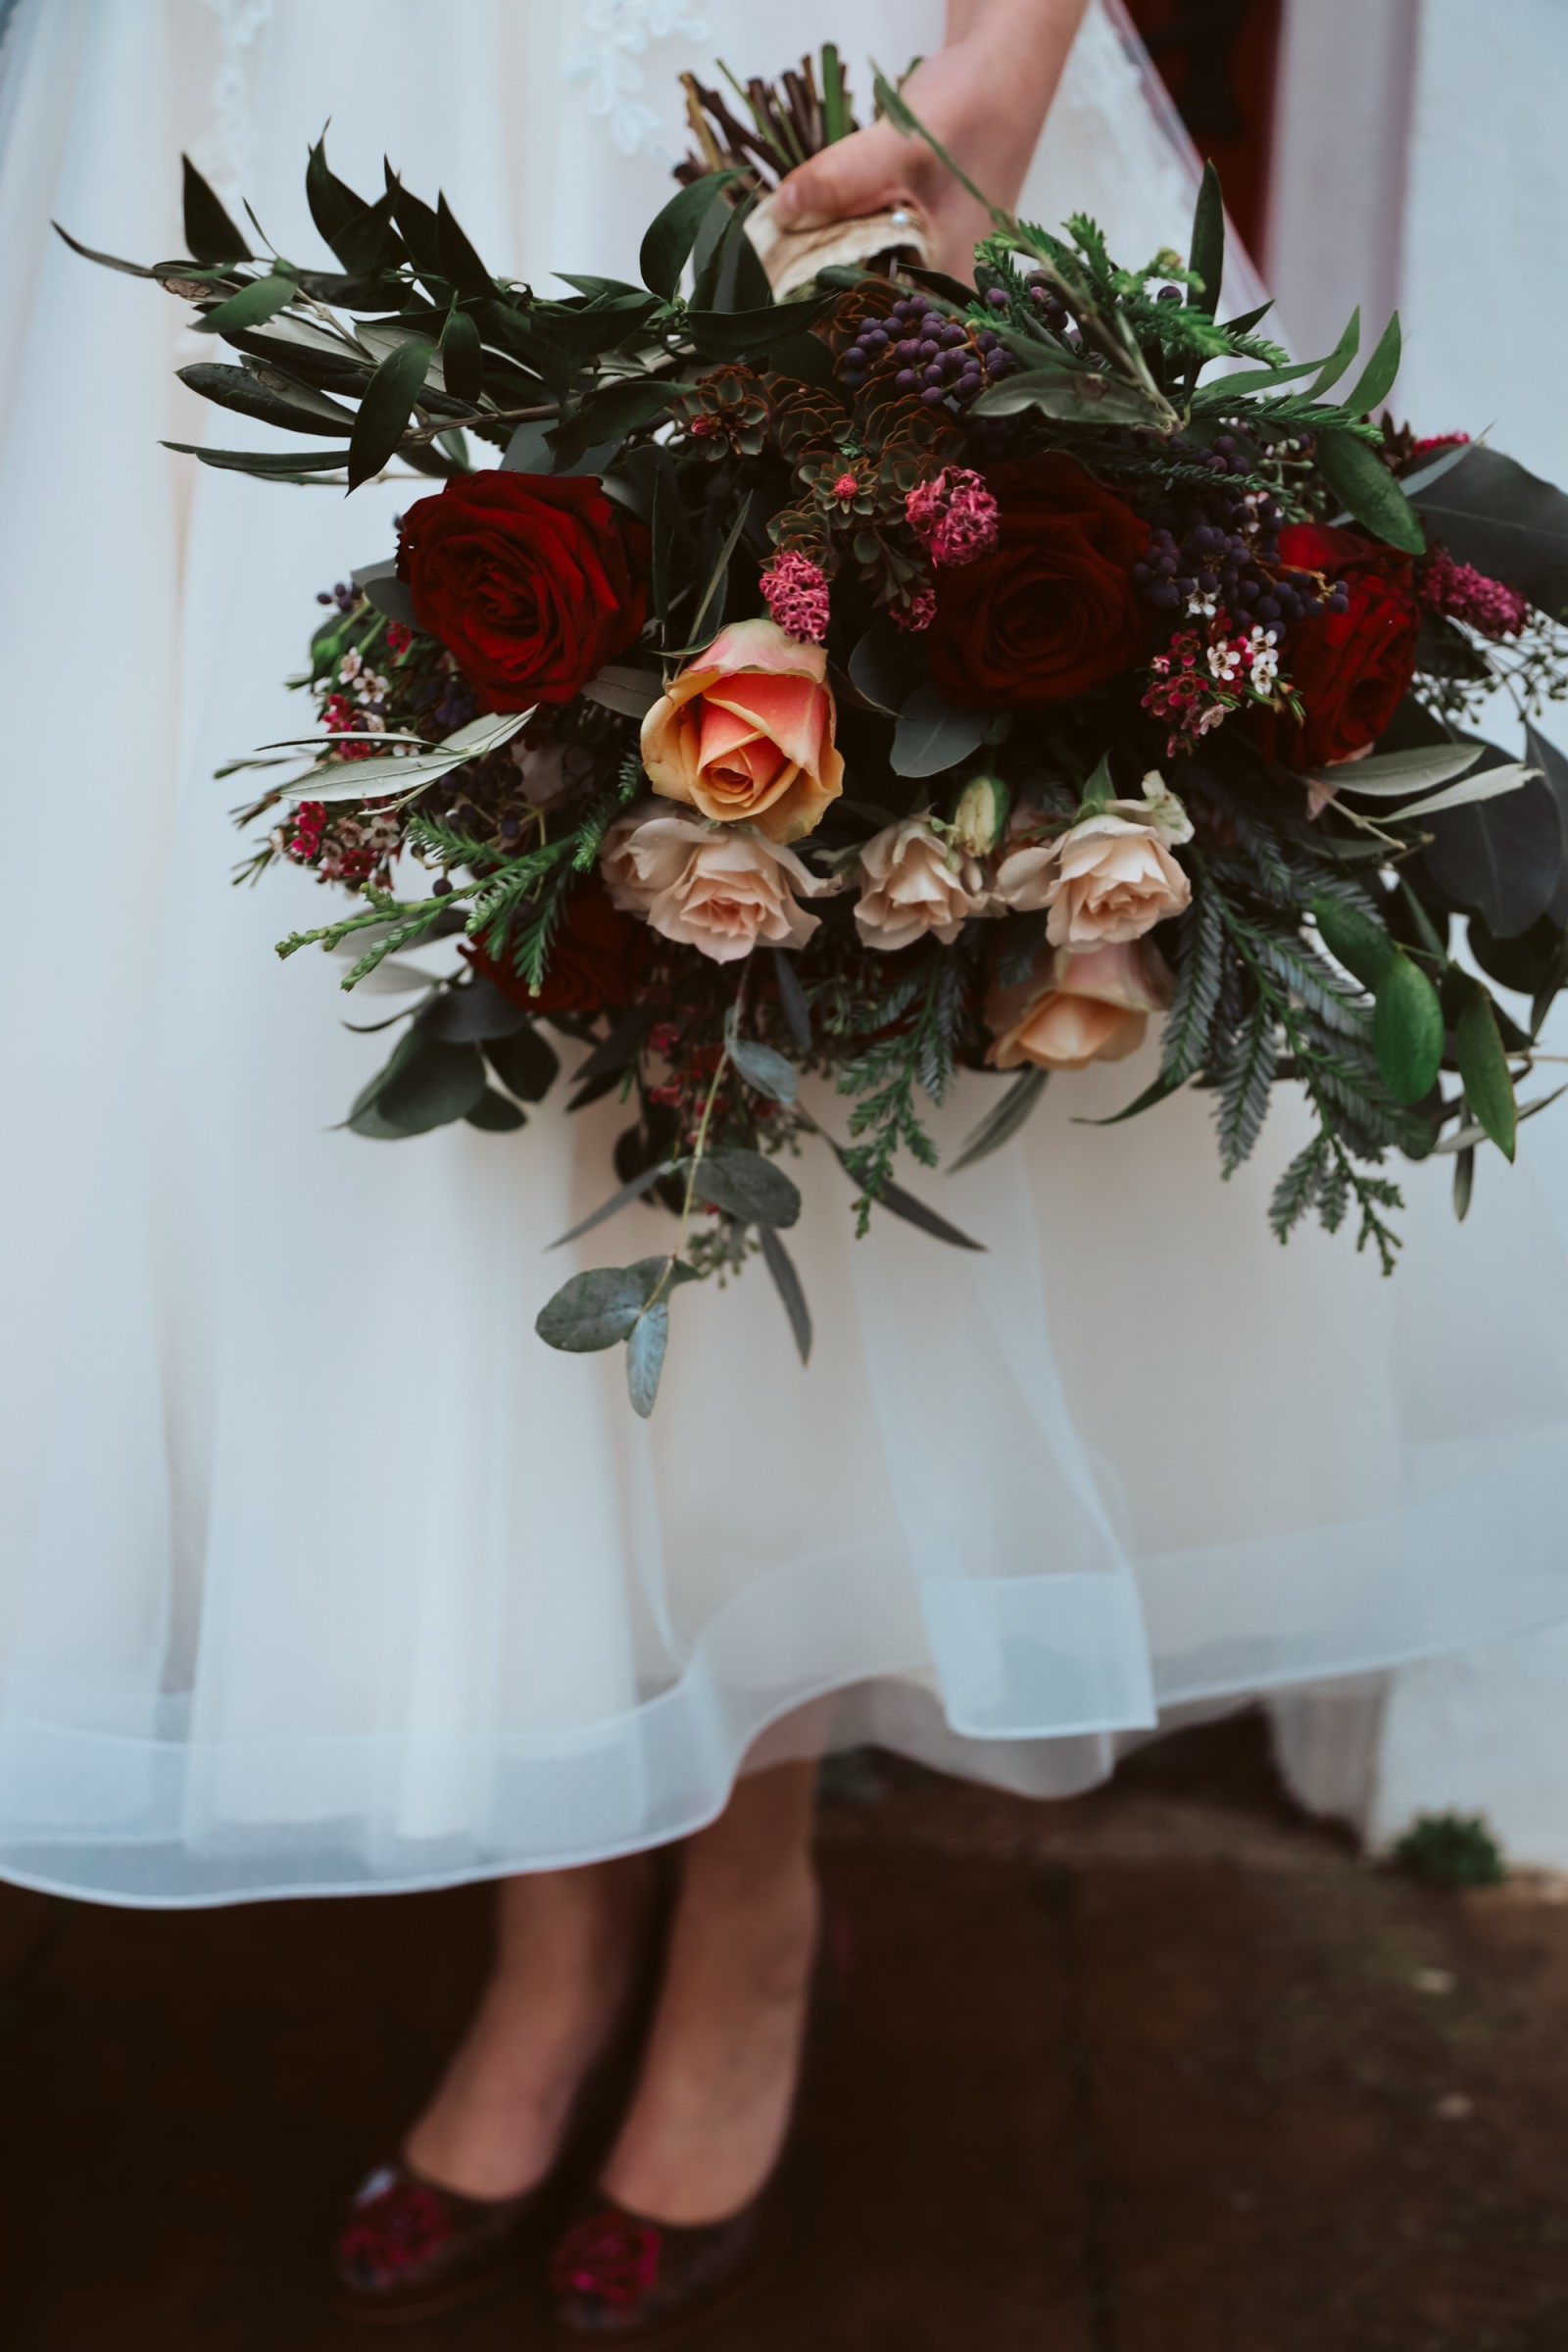 Great Betley Farmhouse wedding venue - Christmas micro wedding - christmas wedding - nhs wedding - wedding flowers with shades of red and peach